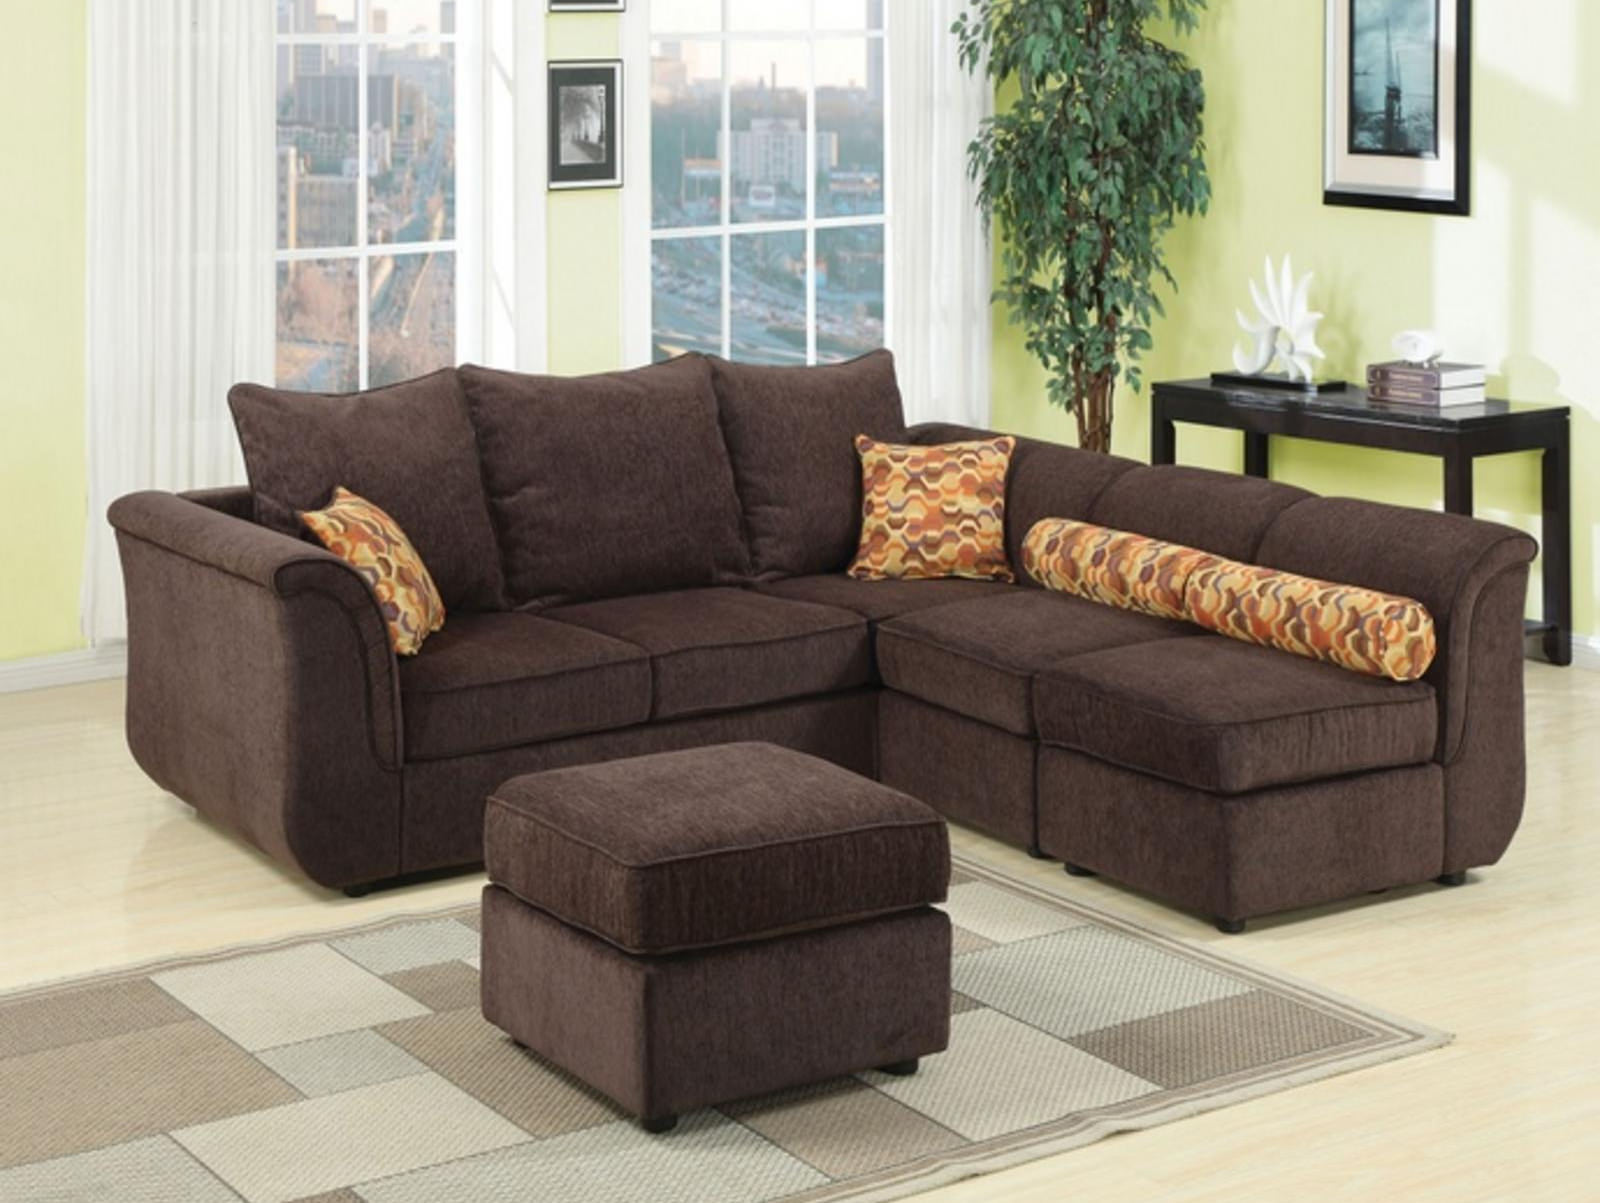 Chocolate Chenille Upholstered Modular Sectional Sofa